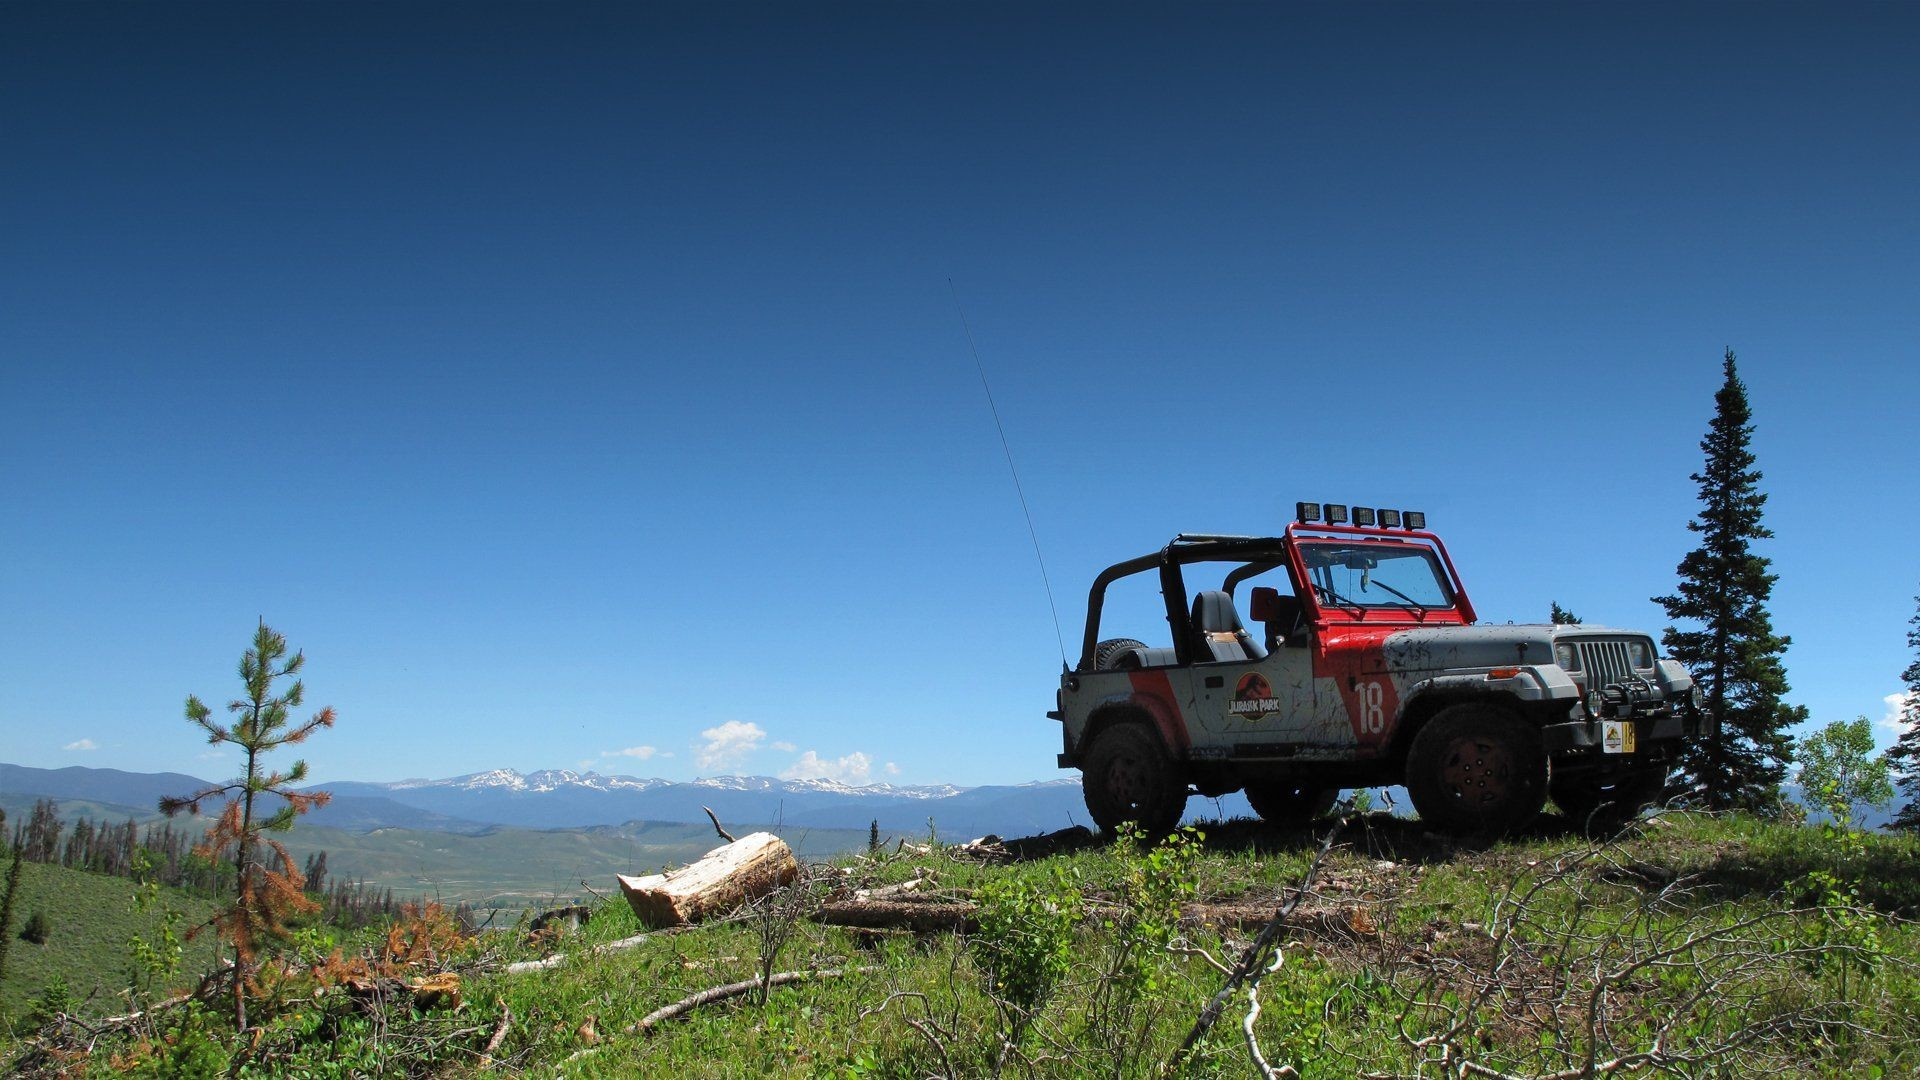 Res: 1920x1080, Jurassic Park Jeep-To the Top wallpaper |  | 563920 .